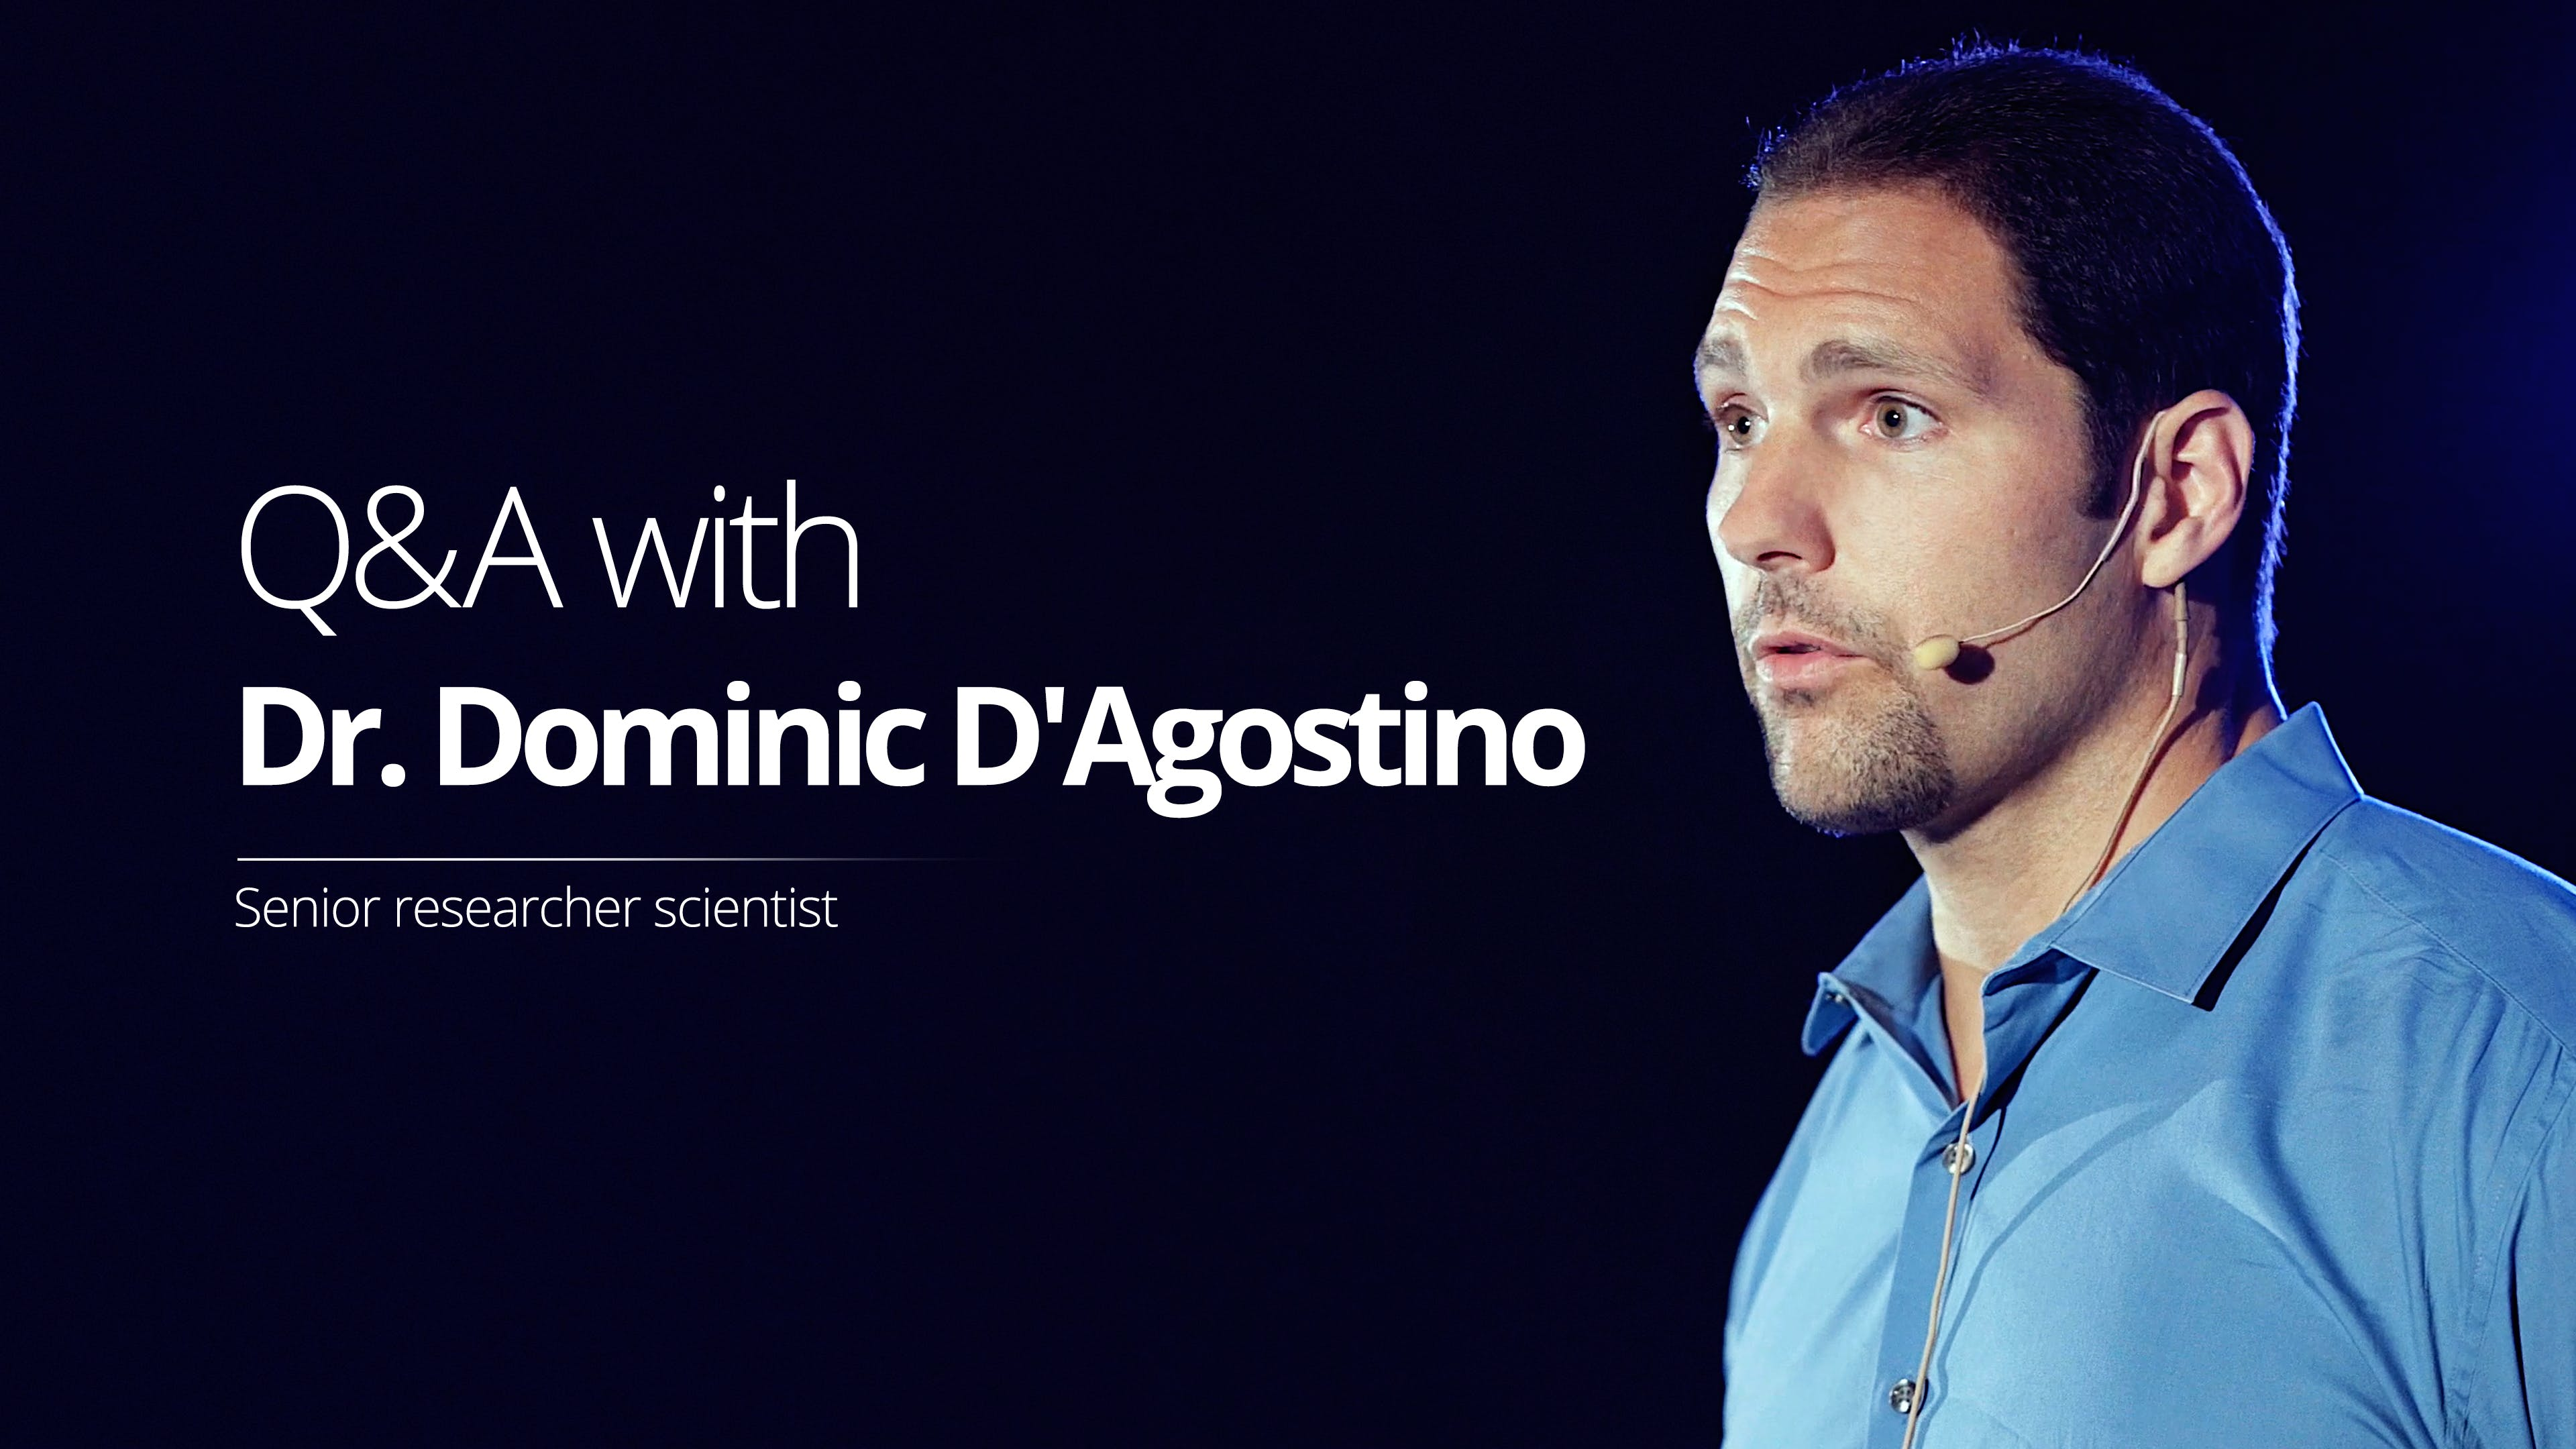 Q&A with Dr. Dominic D'Agostino